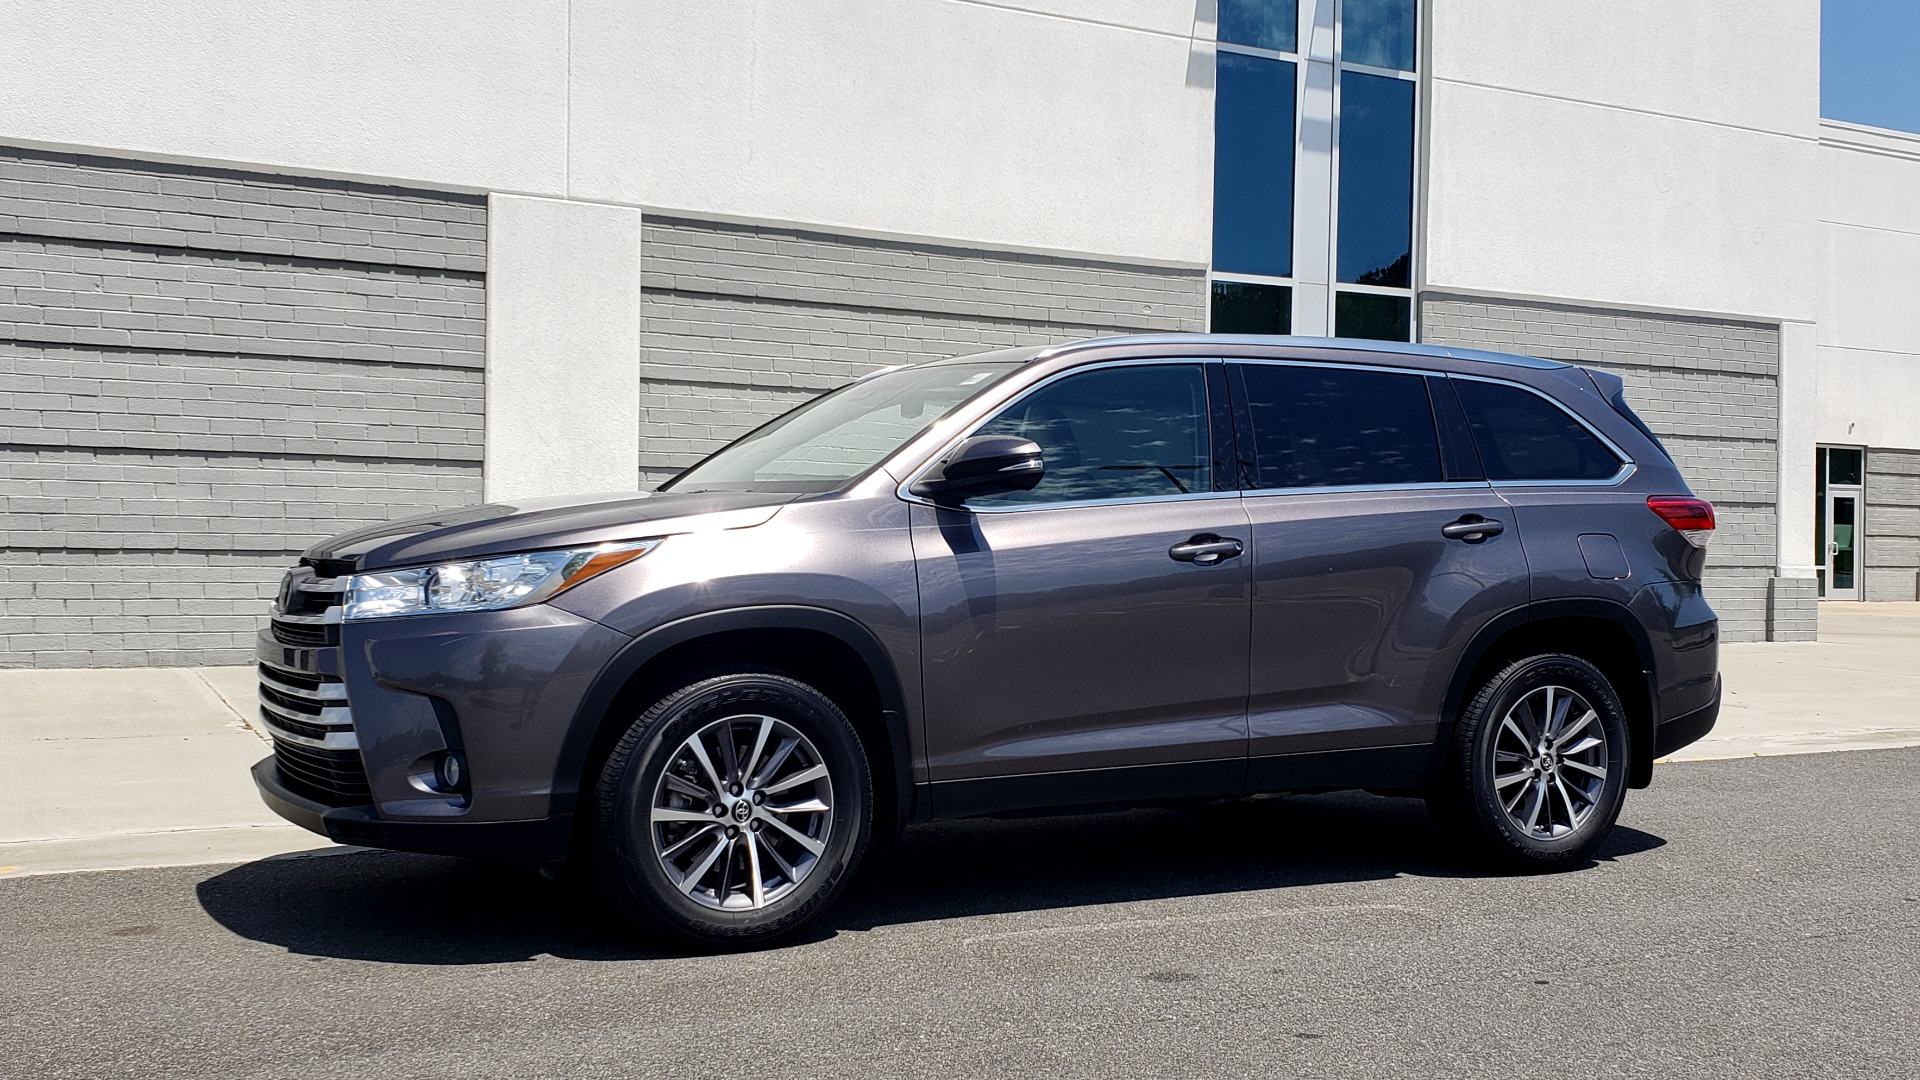 Used 2019 Toyota HIGHLANDER XLE / 3.5L V6 / AWD / LEATHER / 8-SPD AUTO / 1-OWNER for sale $37,500 at Formula Imports in Charlotte NC 28227 4